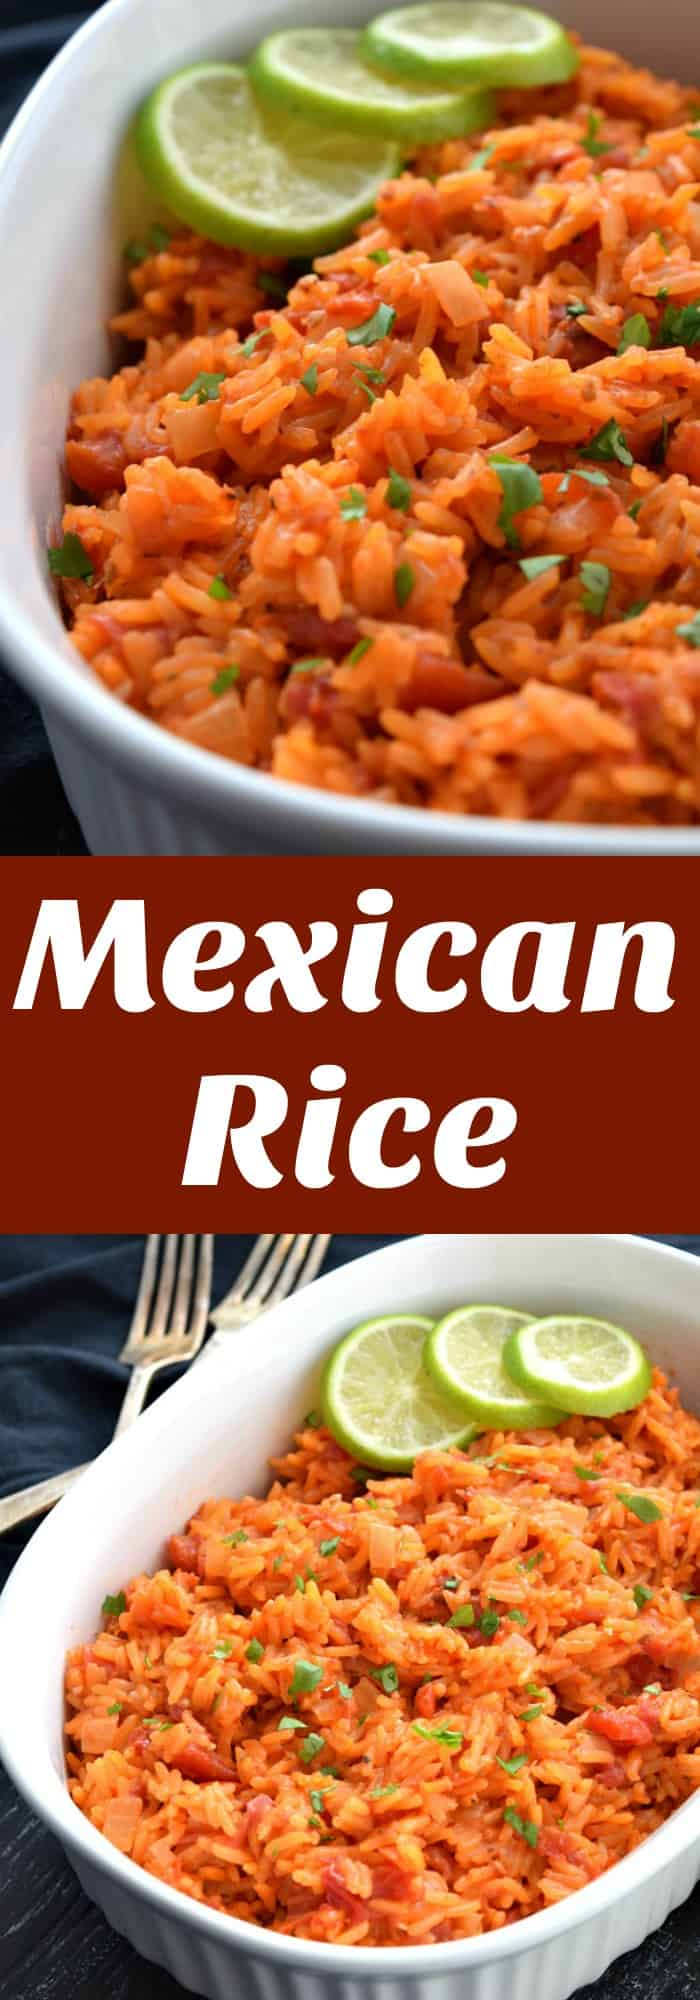 Mexican Rice Pinterest Pin #sidedish #mexicanrice #mexican #rice